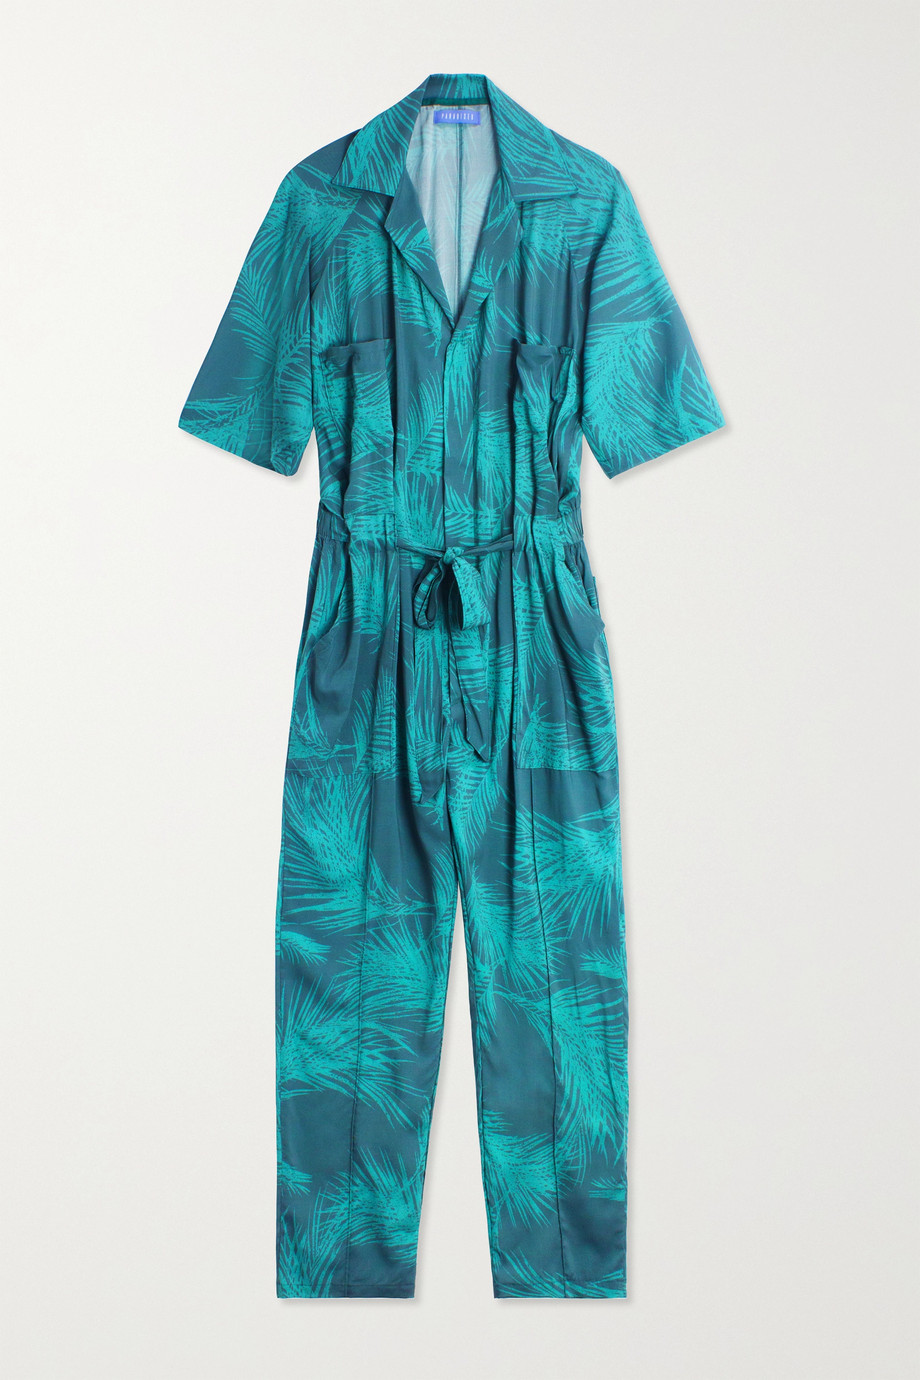 Paradised Apres belted printed voile jumpsuit